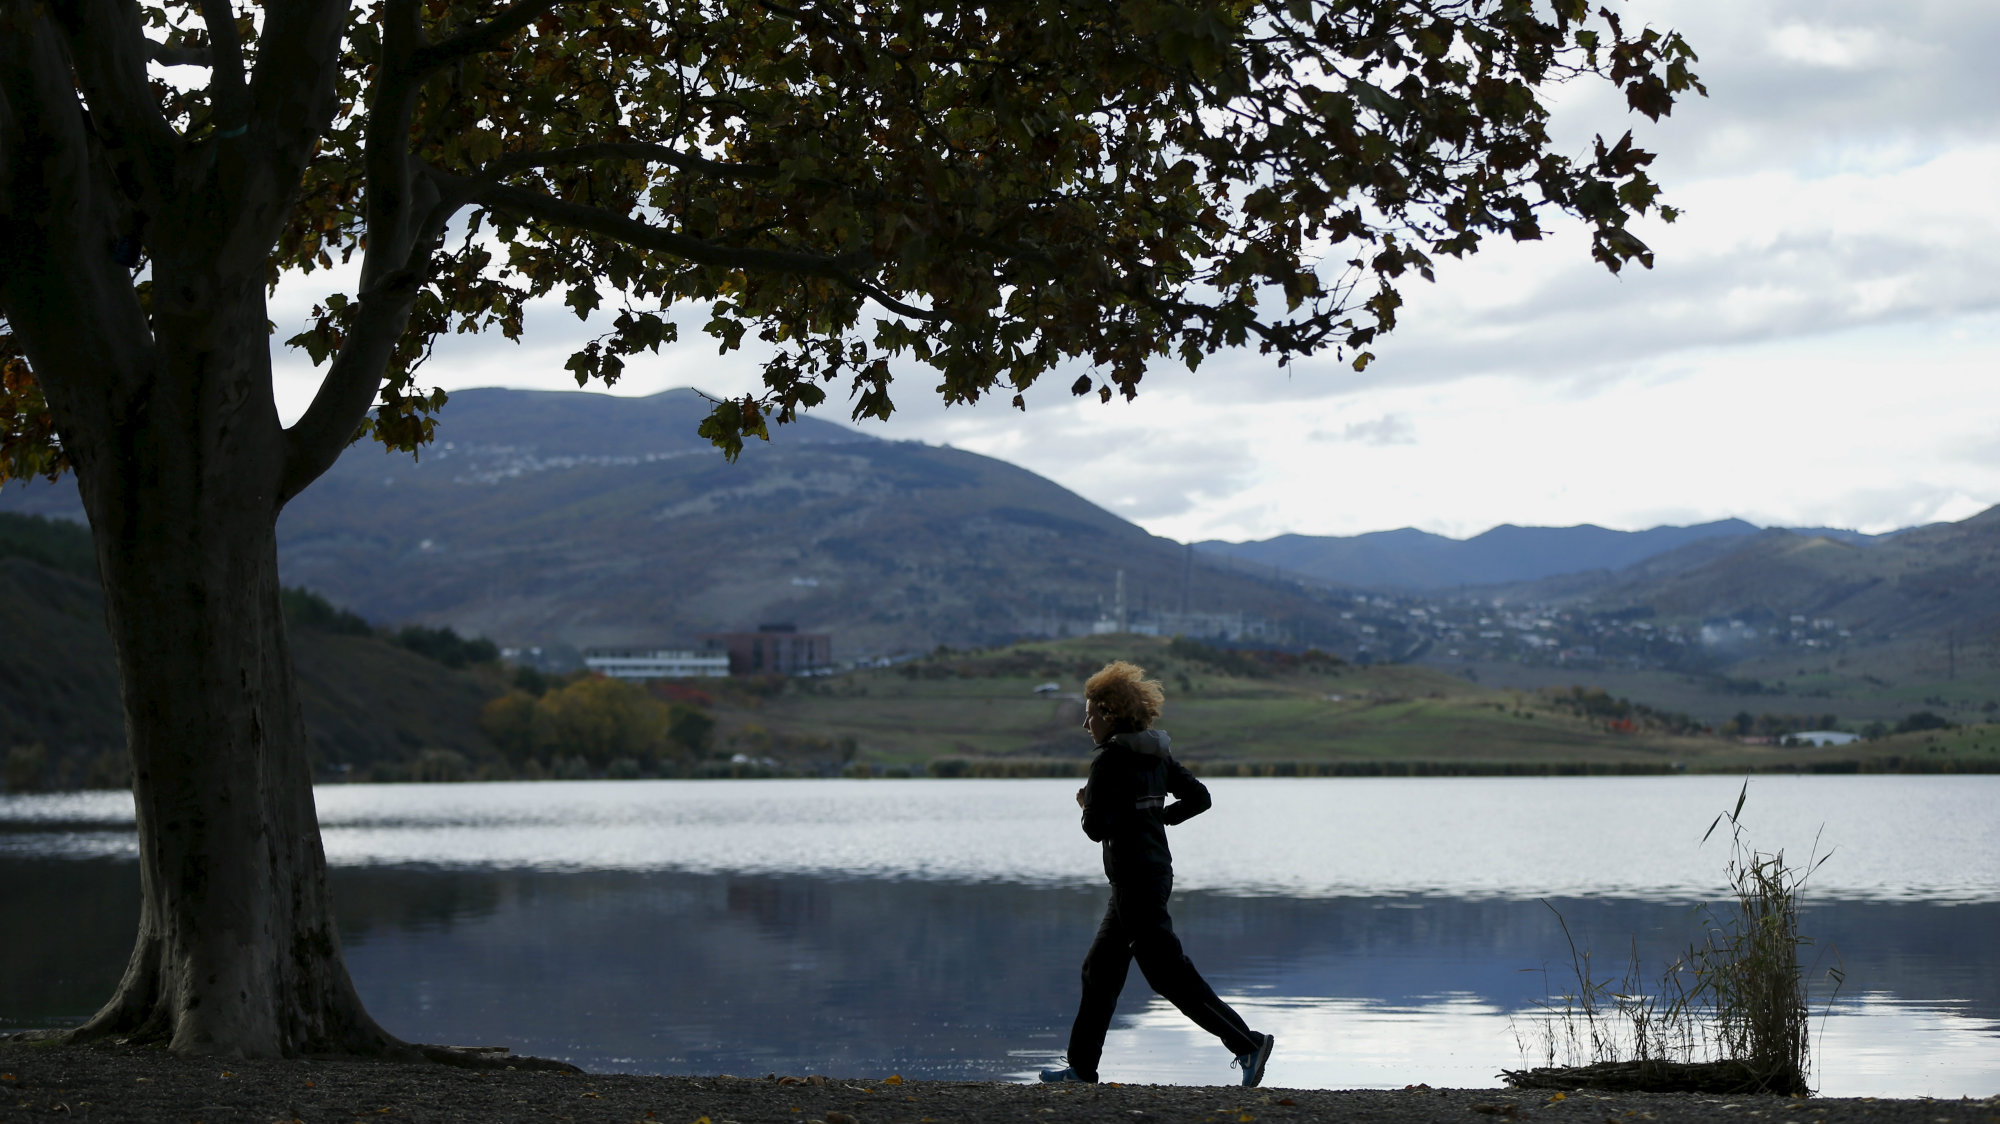 A woman jogs on the banks of the Lisi Lake in Tbilisi